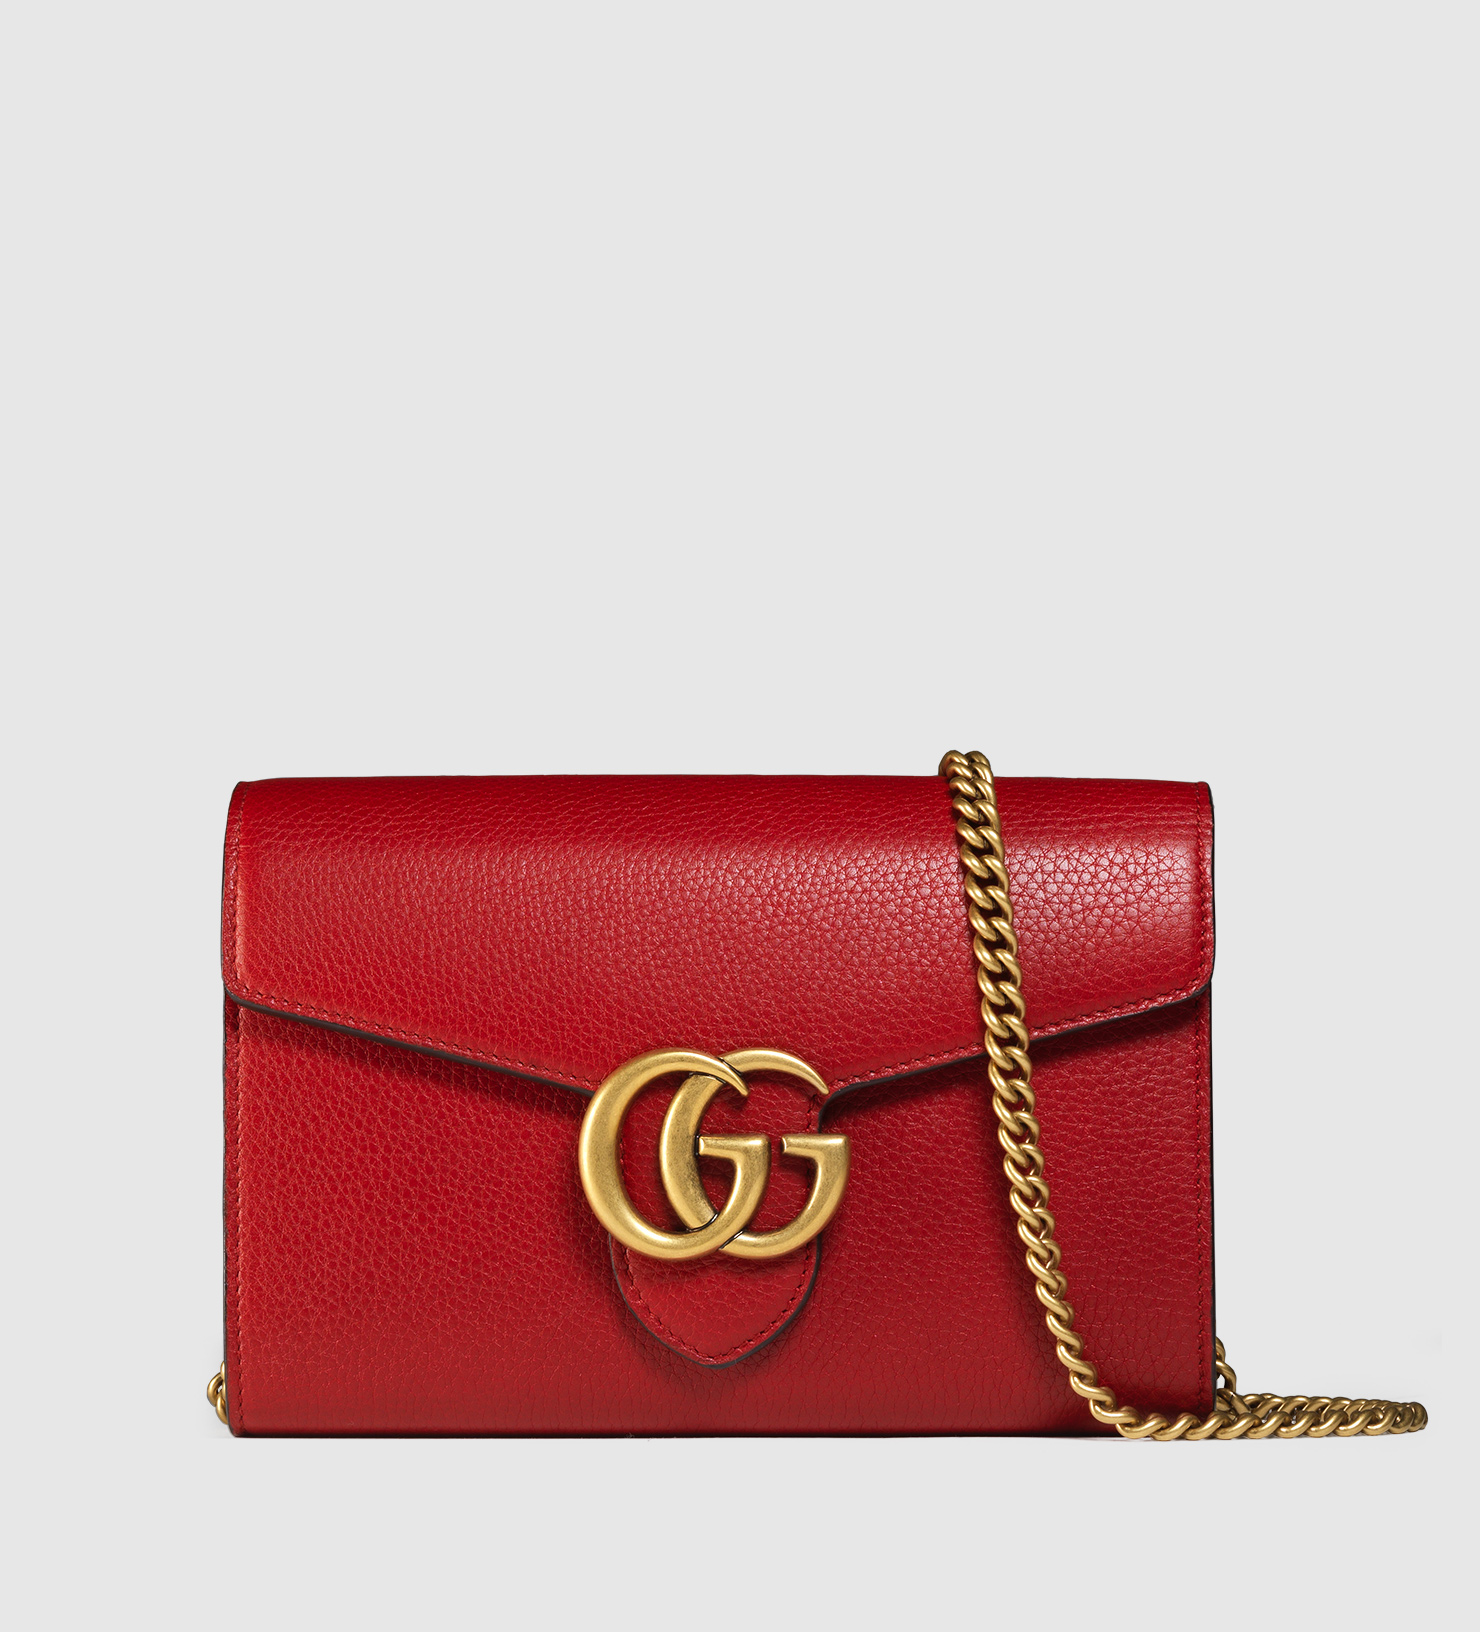 44451e2eff5 Lyst - Gucci Gg Marmont Leather Chain Wallet in Red